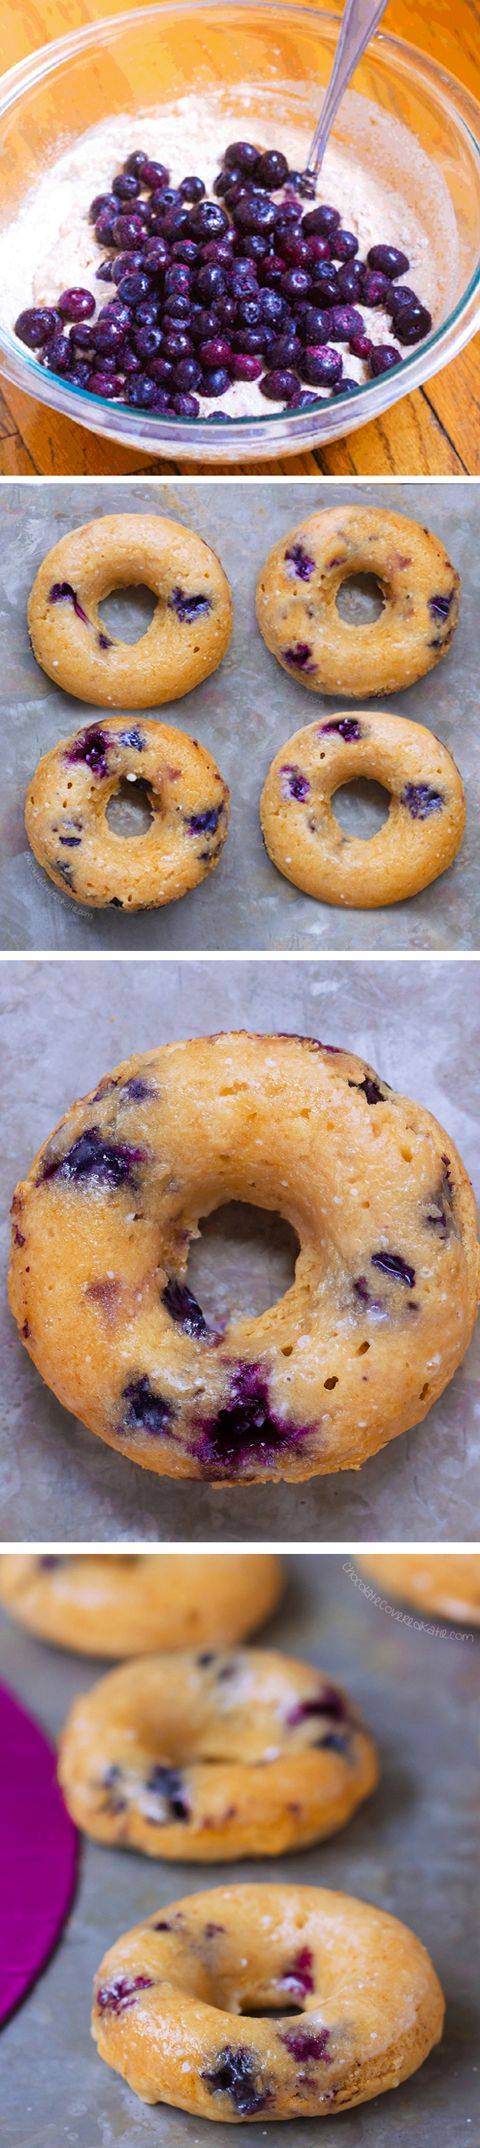 Blueberry BAKED Donuts, So Good!